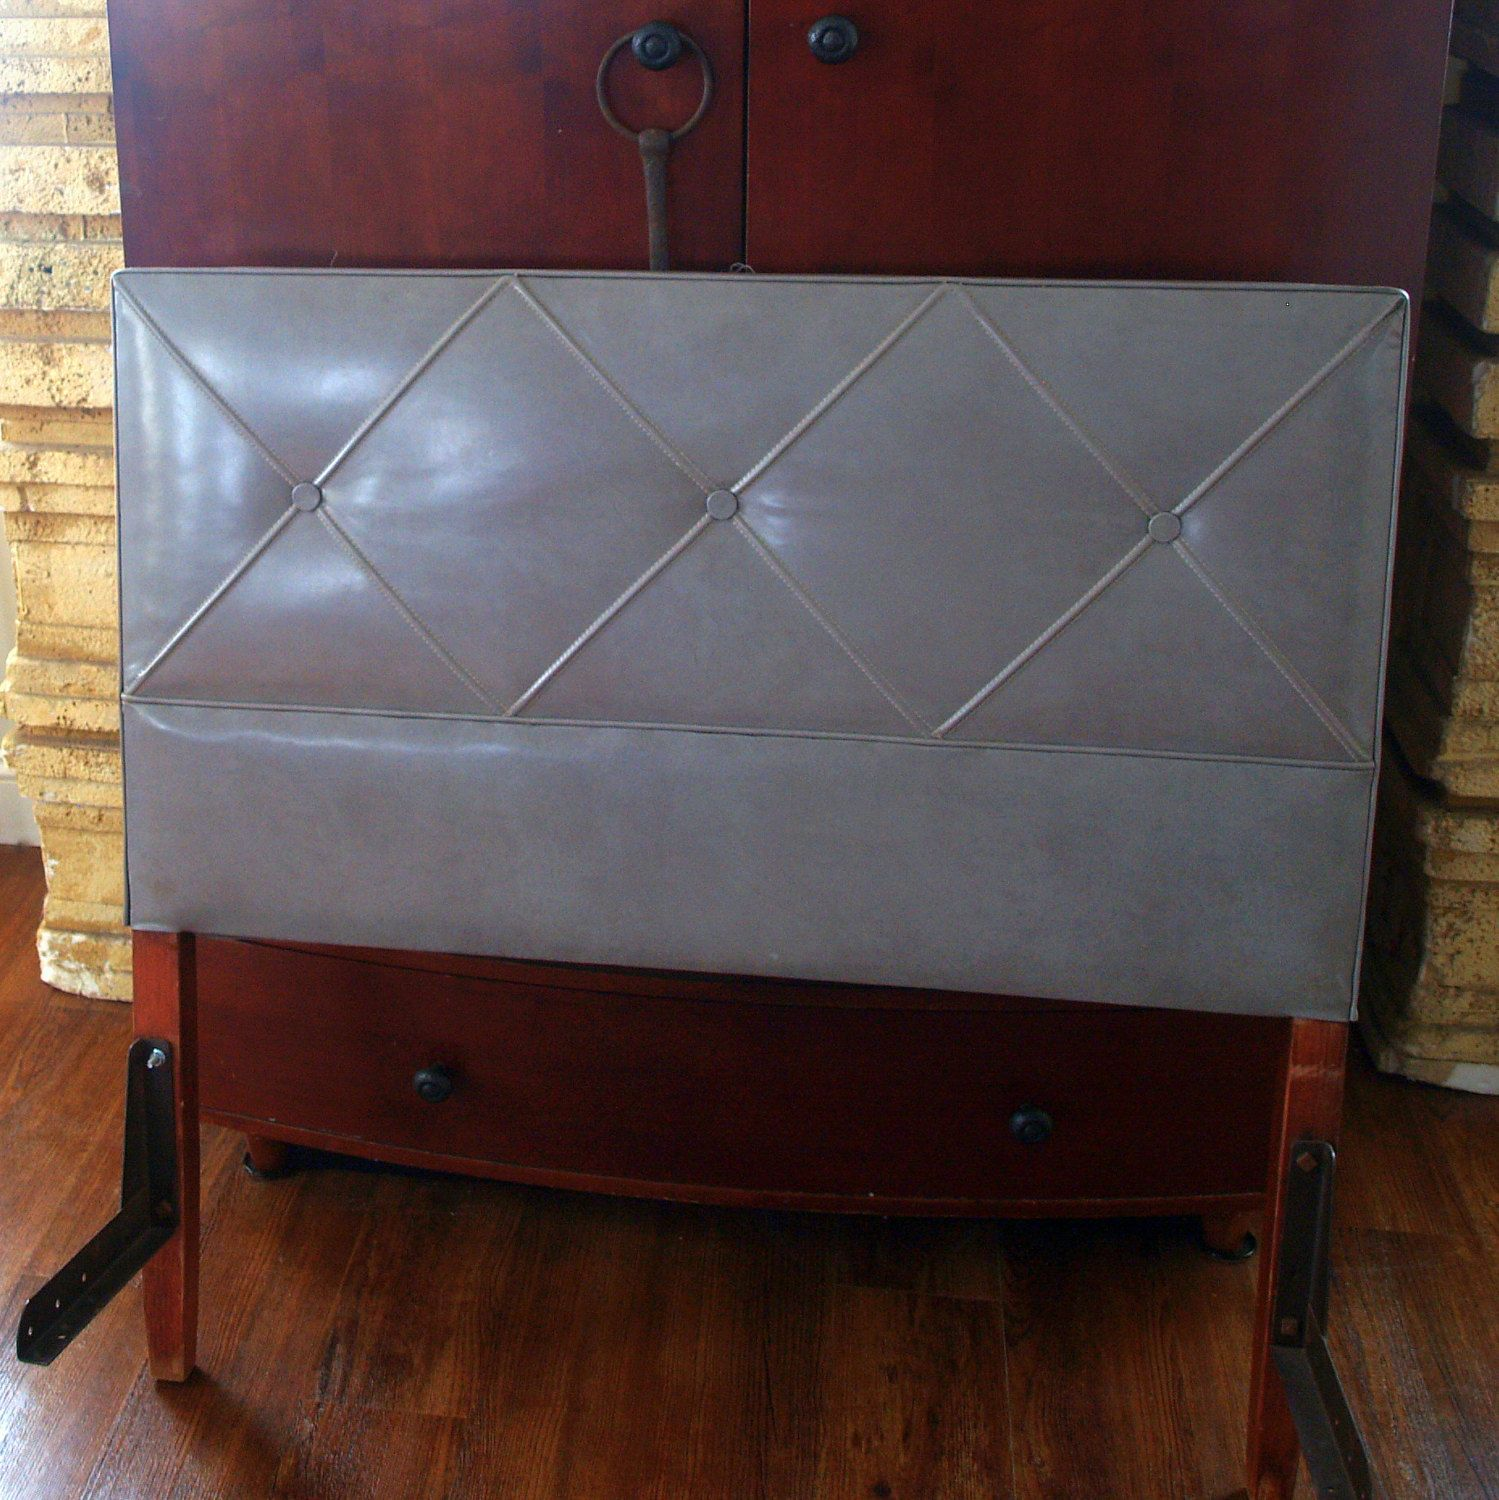 VINTAGE MIDCENTURY MODERN1950s Headboard Mid Century Grey Faux Leather  Upholstered Tufted Button Walnut Wood Retro Bedroom